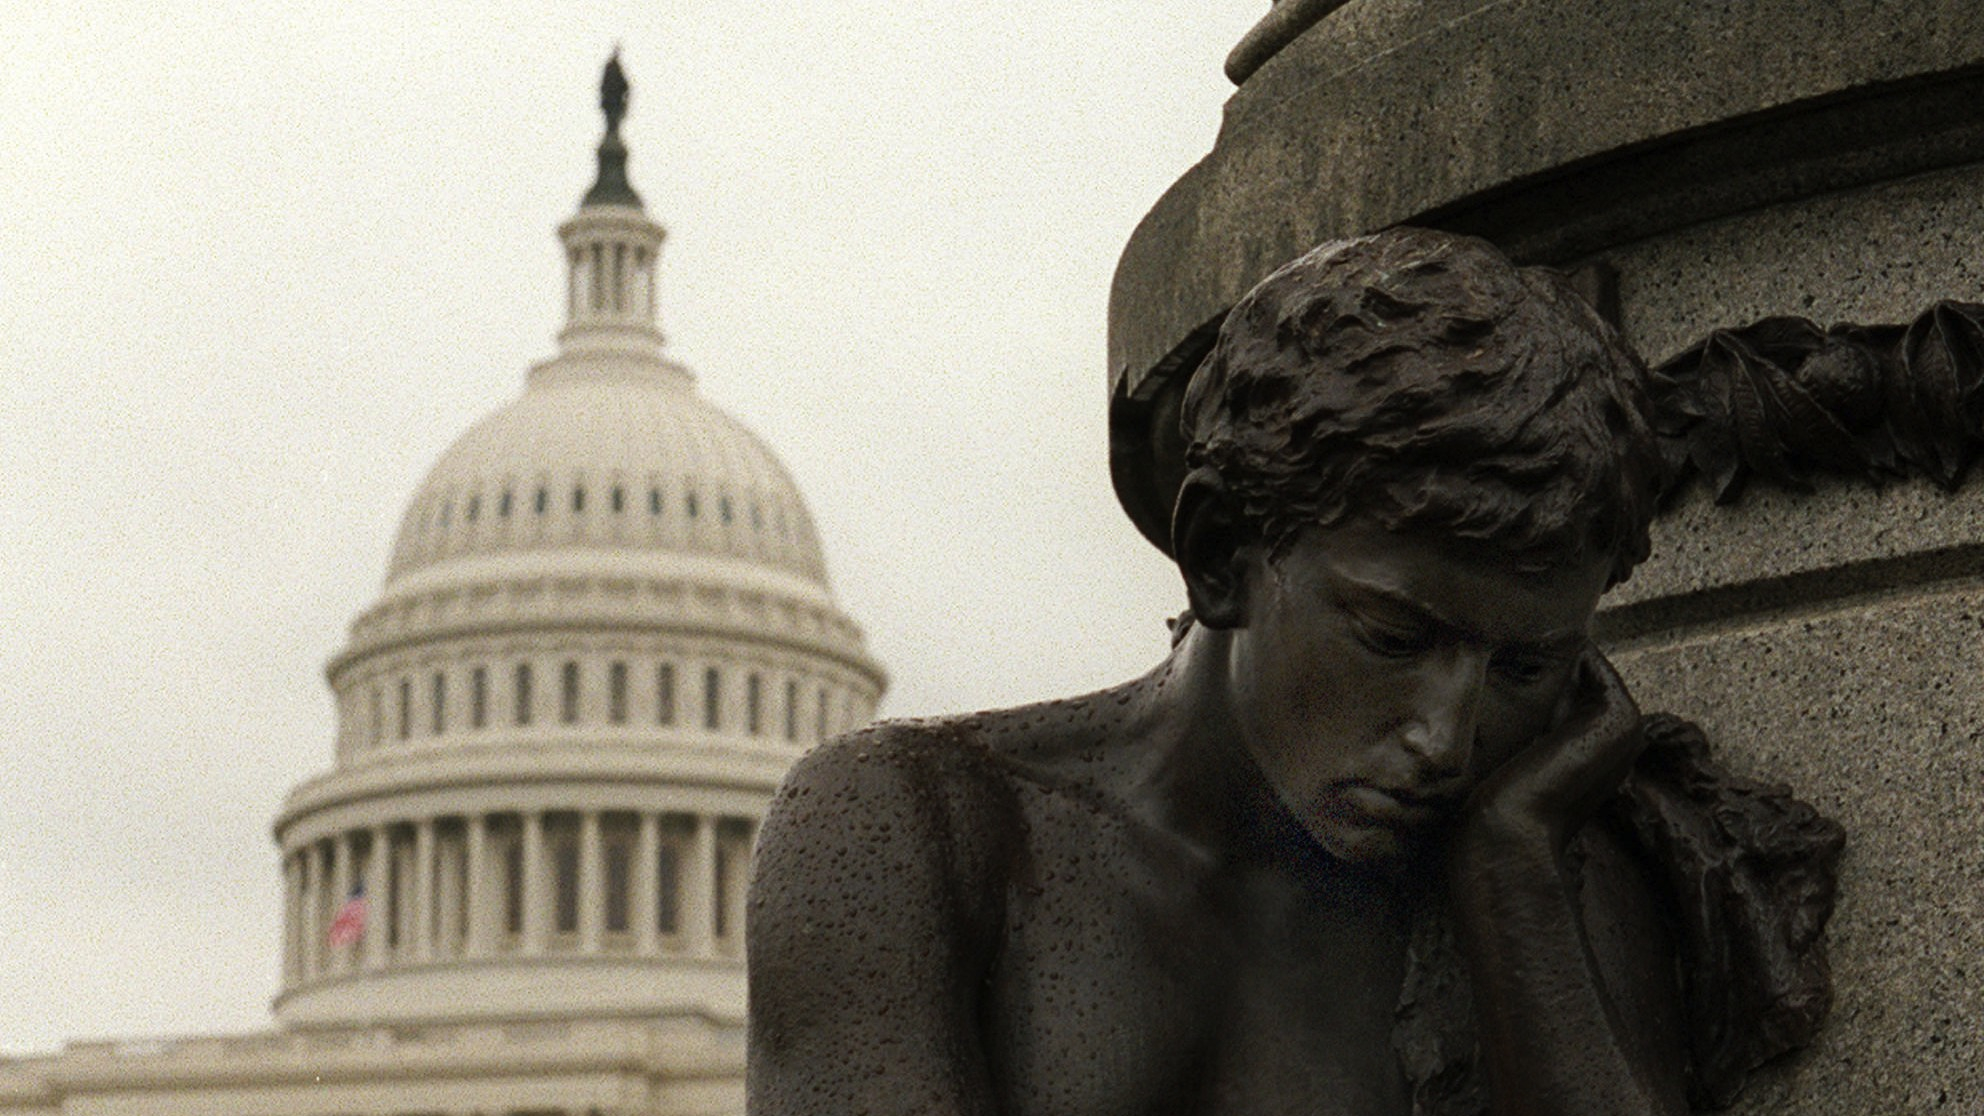 A forelorn looking sculpture sits at the base of President James A. Garfield's statue on Capitol Hill Monday Nov. 13, 1995 in anticipation to Tuesday's possible federal government shutdown. With the clock ticking toward a midnight shutdown, President Clinton vetoed a temporary borrowing bill Monday and prepared to close most government operations in a jolting political fight with Congress. (AP Photo/Ron Edmonds)